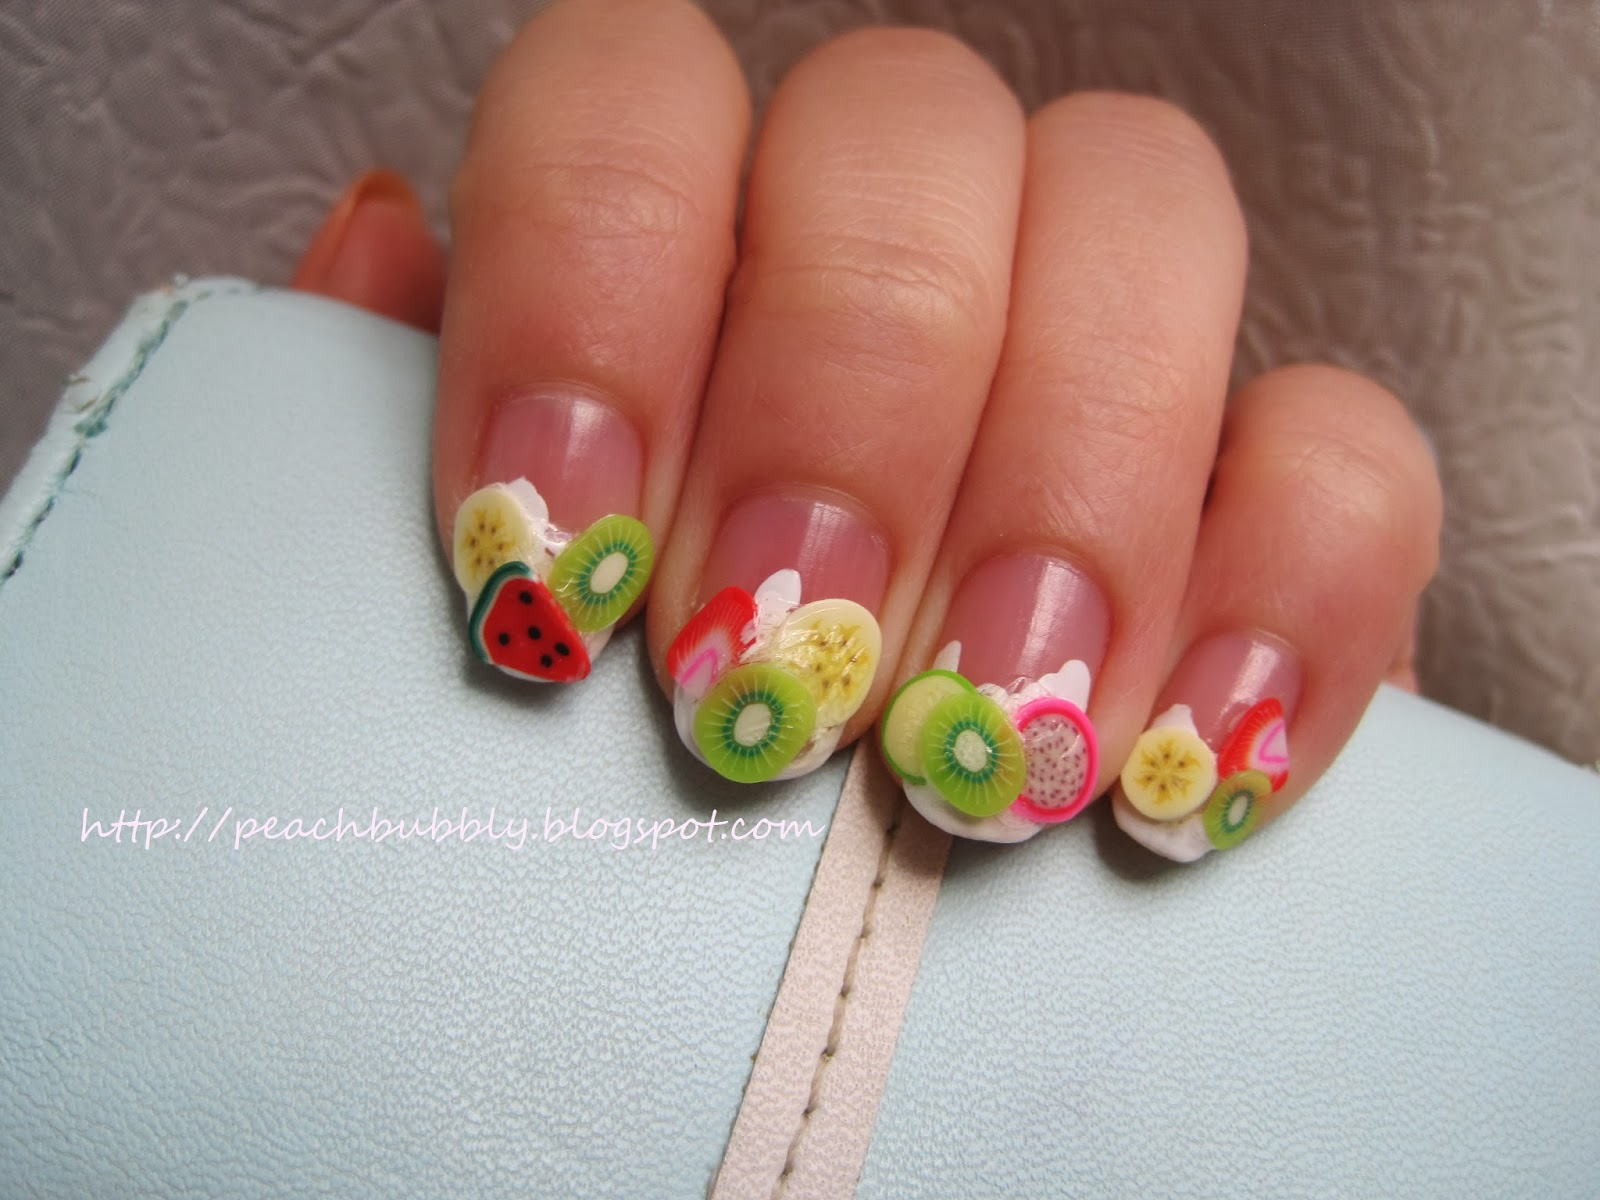 peachbubbly: Fimo Fruit Slices on Yogurt Nail Art